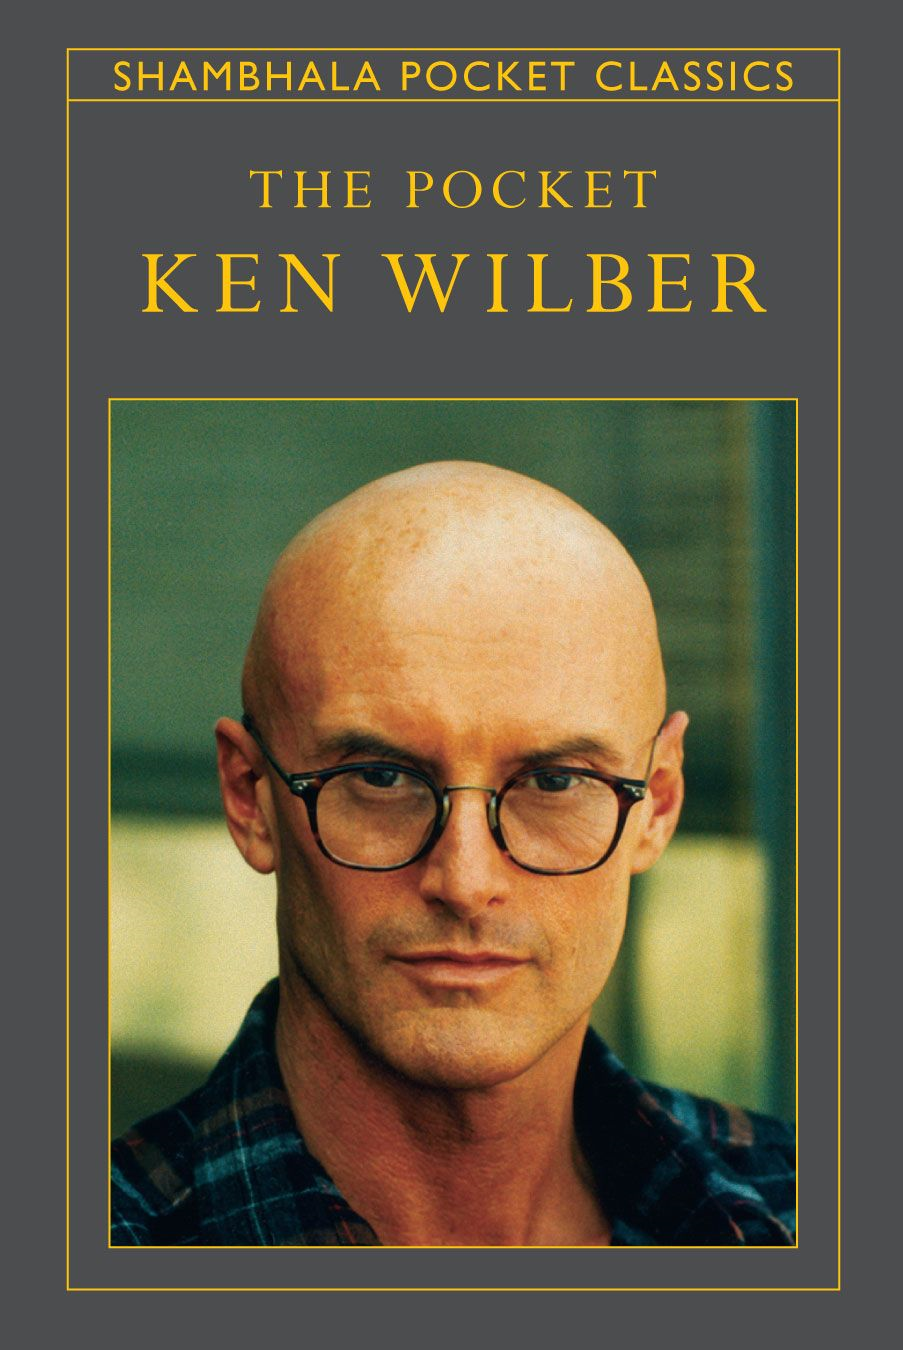 The Pocket Ken Wilber By: Ken Wilber